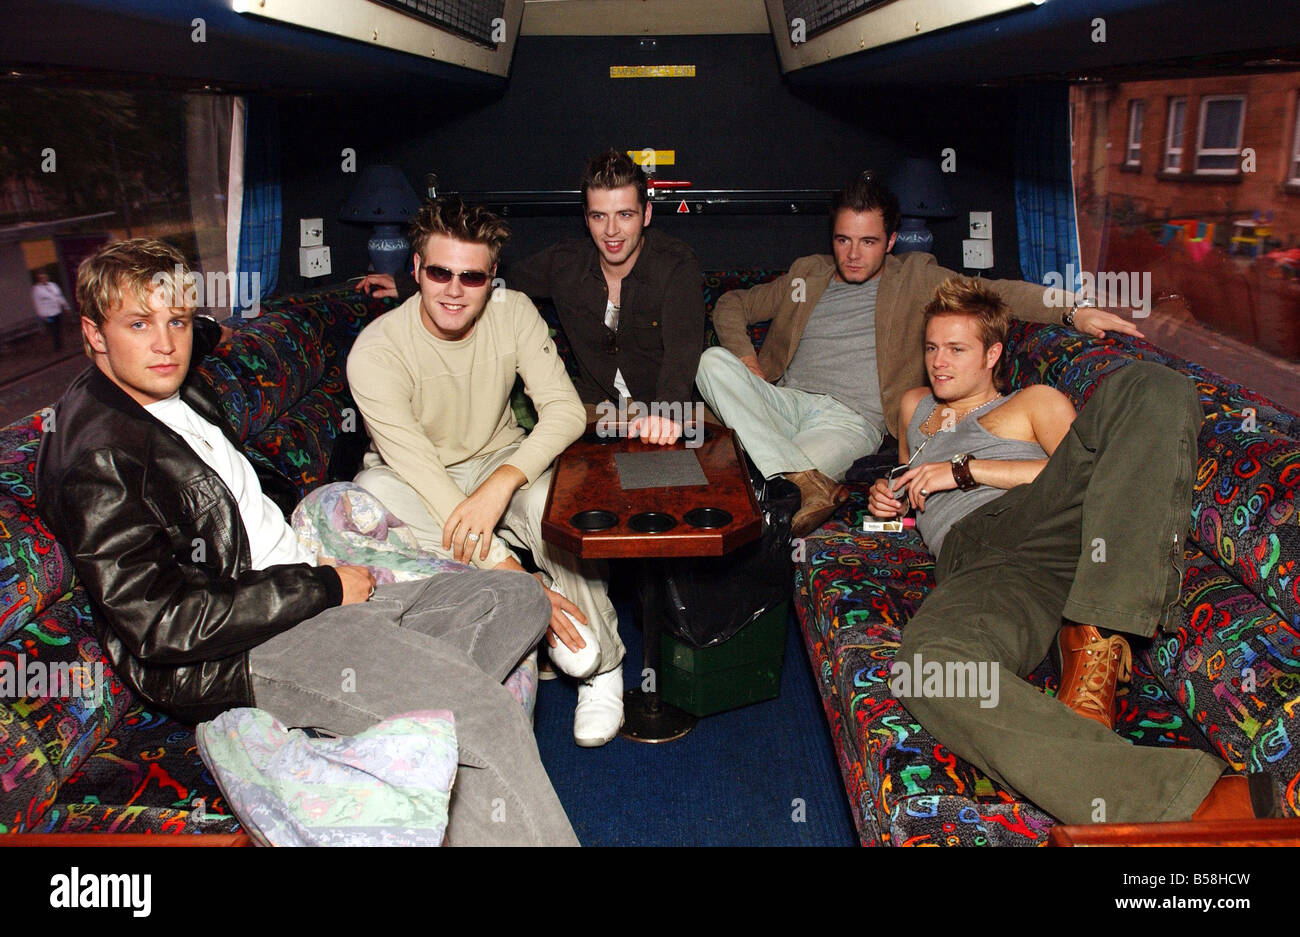 Westlife Tour Stock Photos & Westlife Tour Stock Images - Alamy